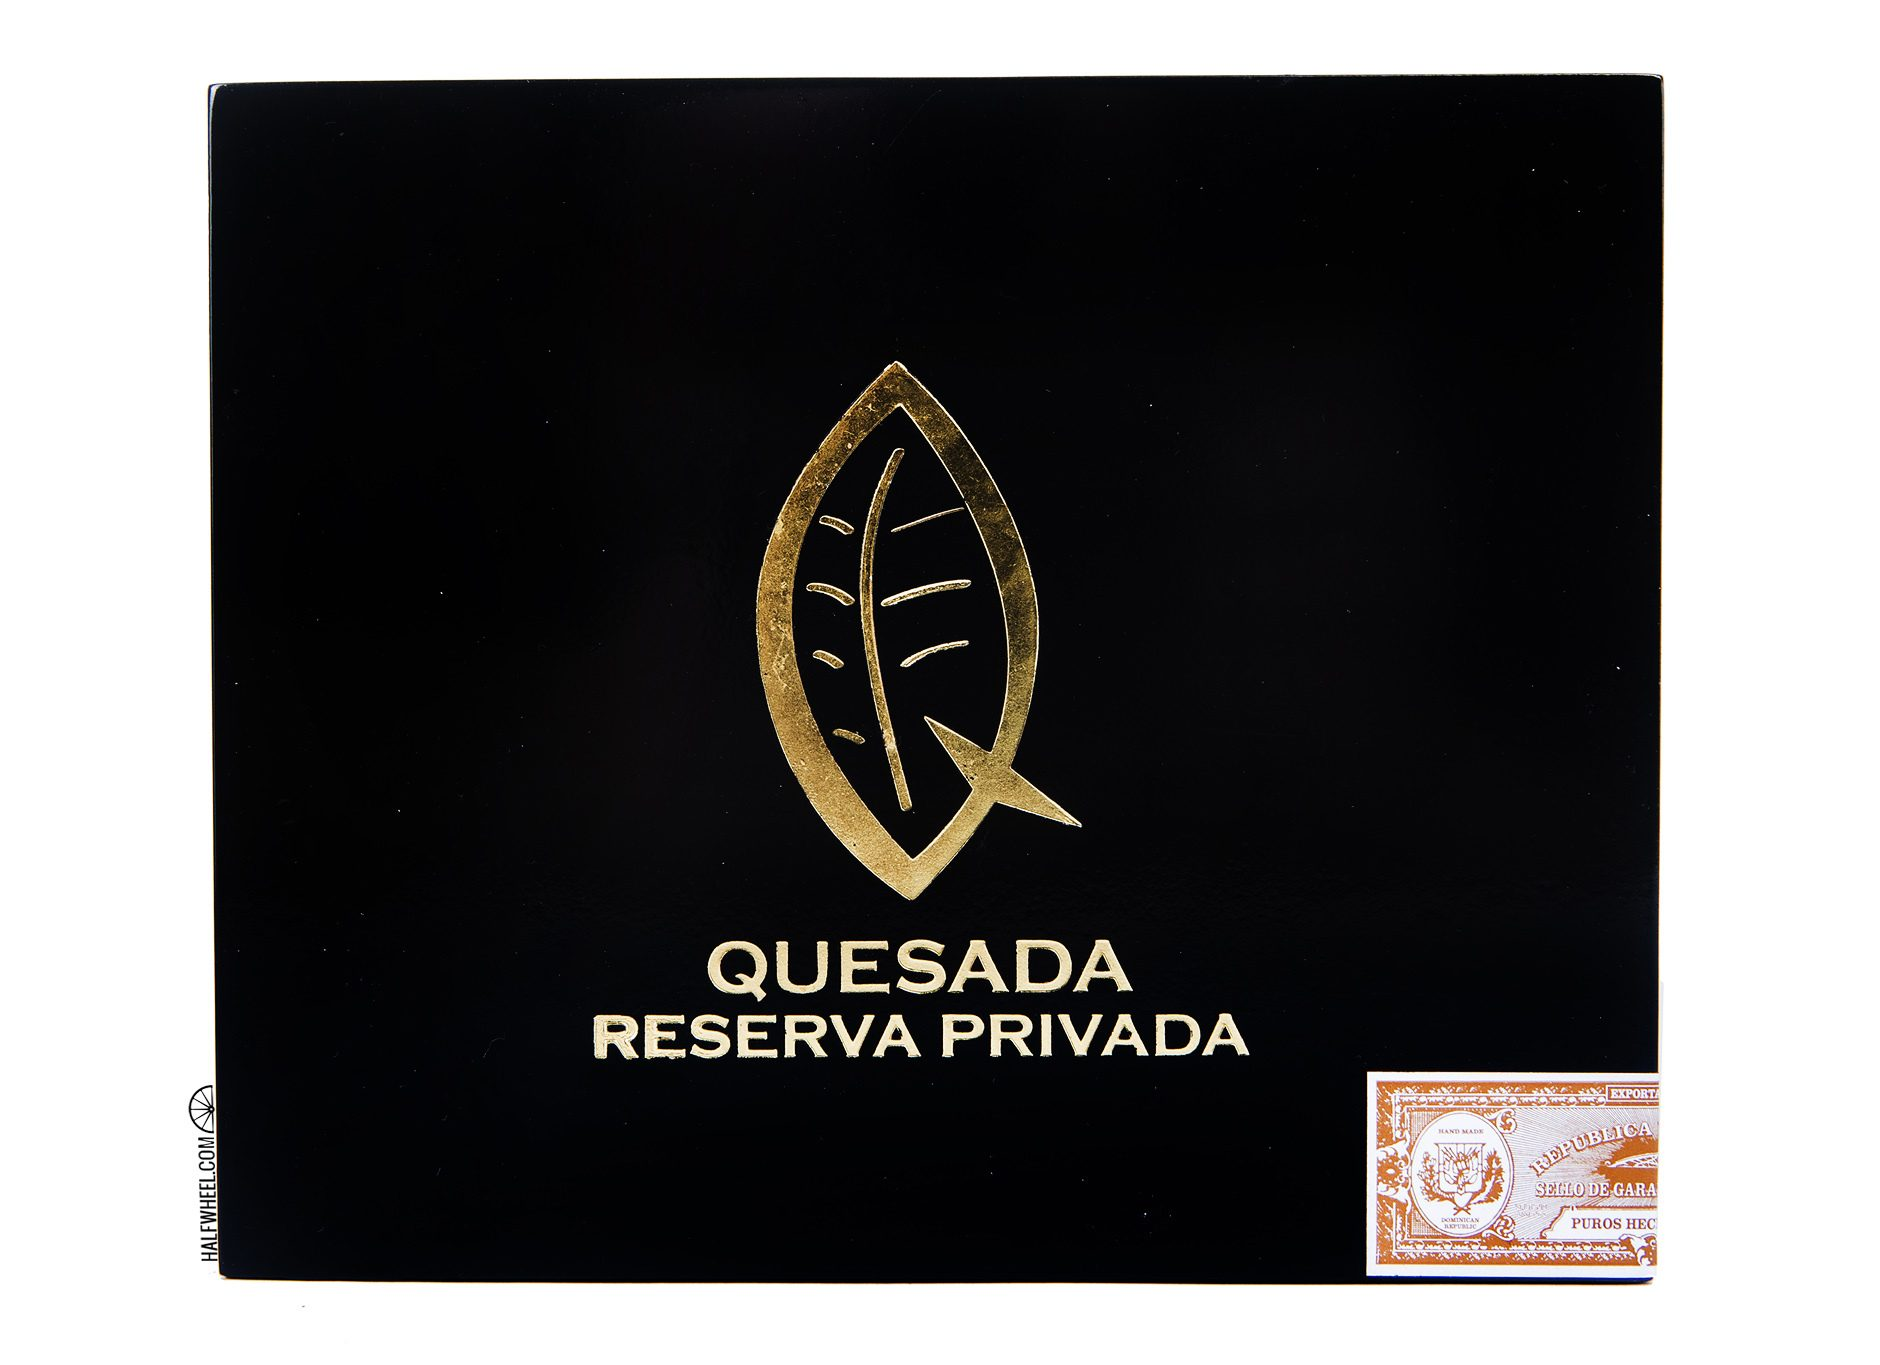 Quesada-Reserva-Privada-Barber-Pole-Corona-Gorda-Box-1.jpg